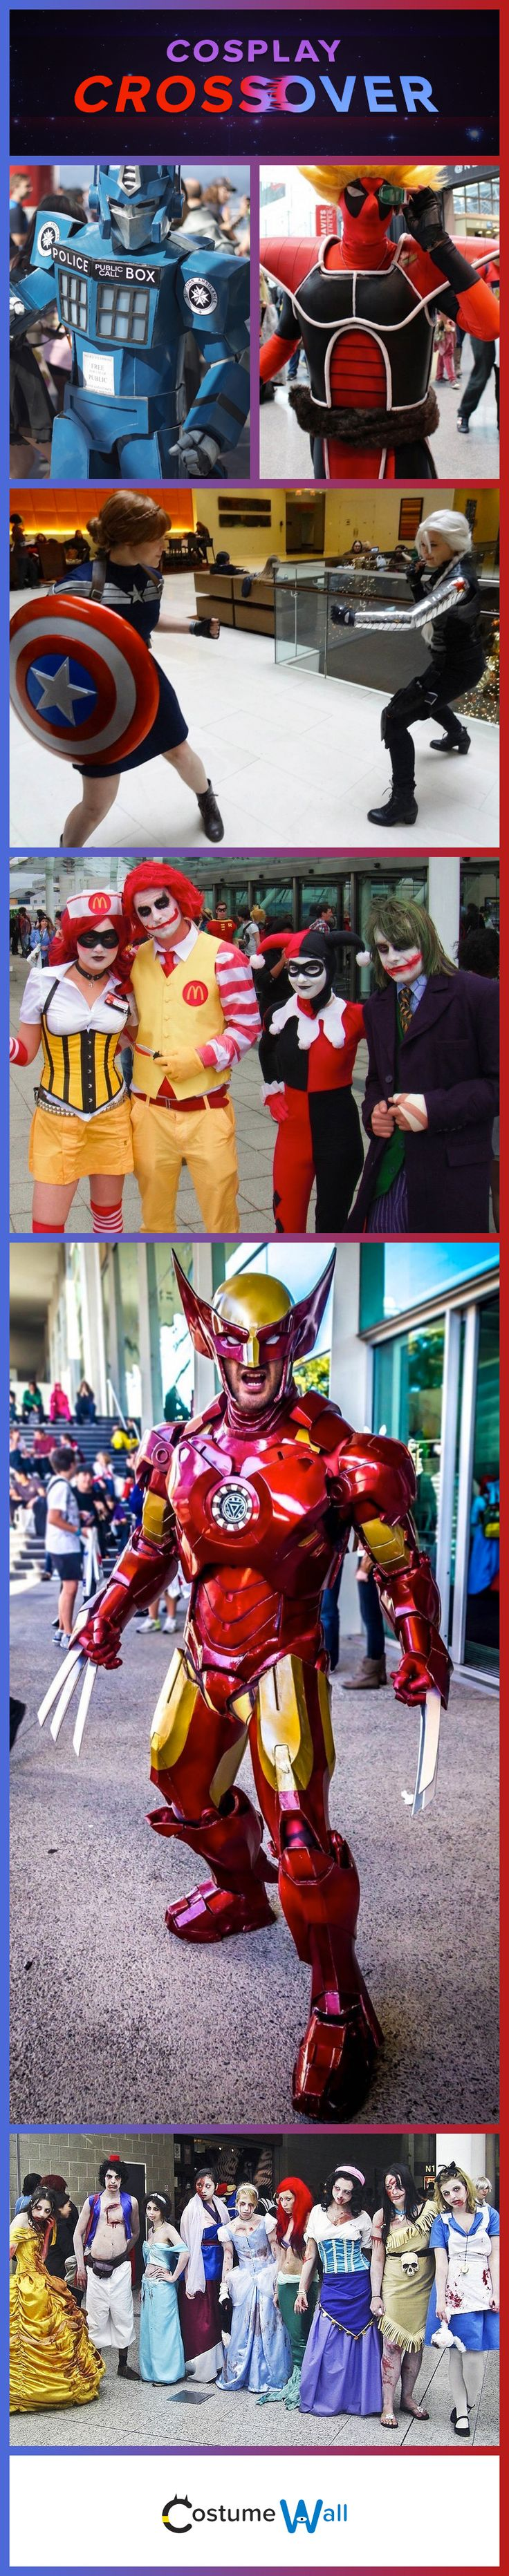 We've found some of the most creative people in cosplay that have put their creativity to work in designing the best costume mashups we have seen.